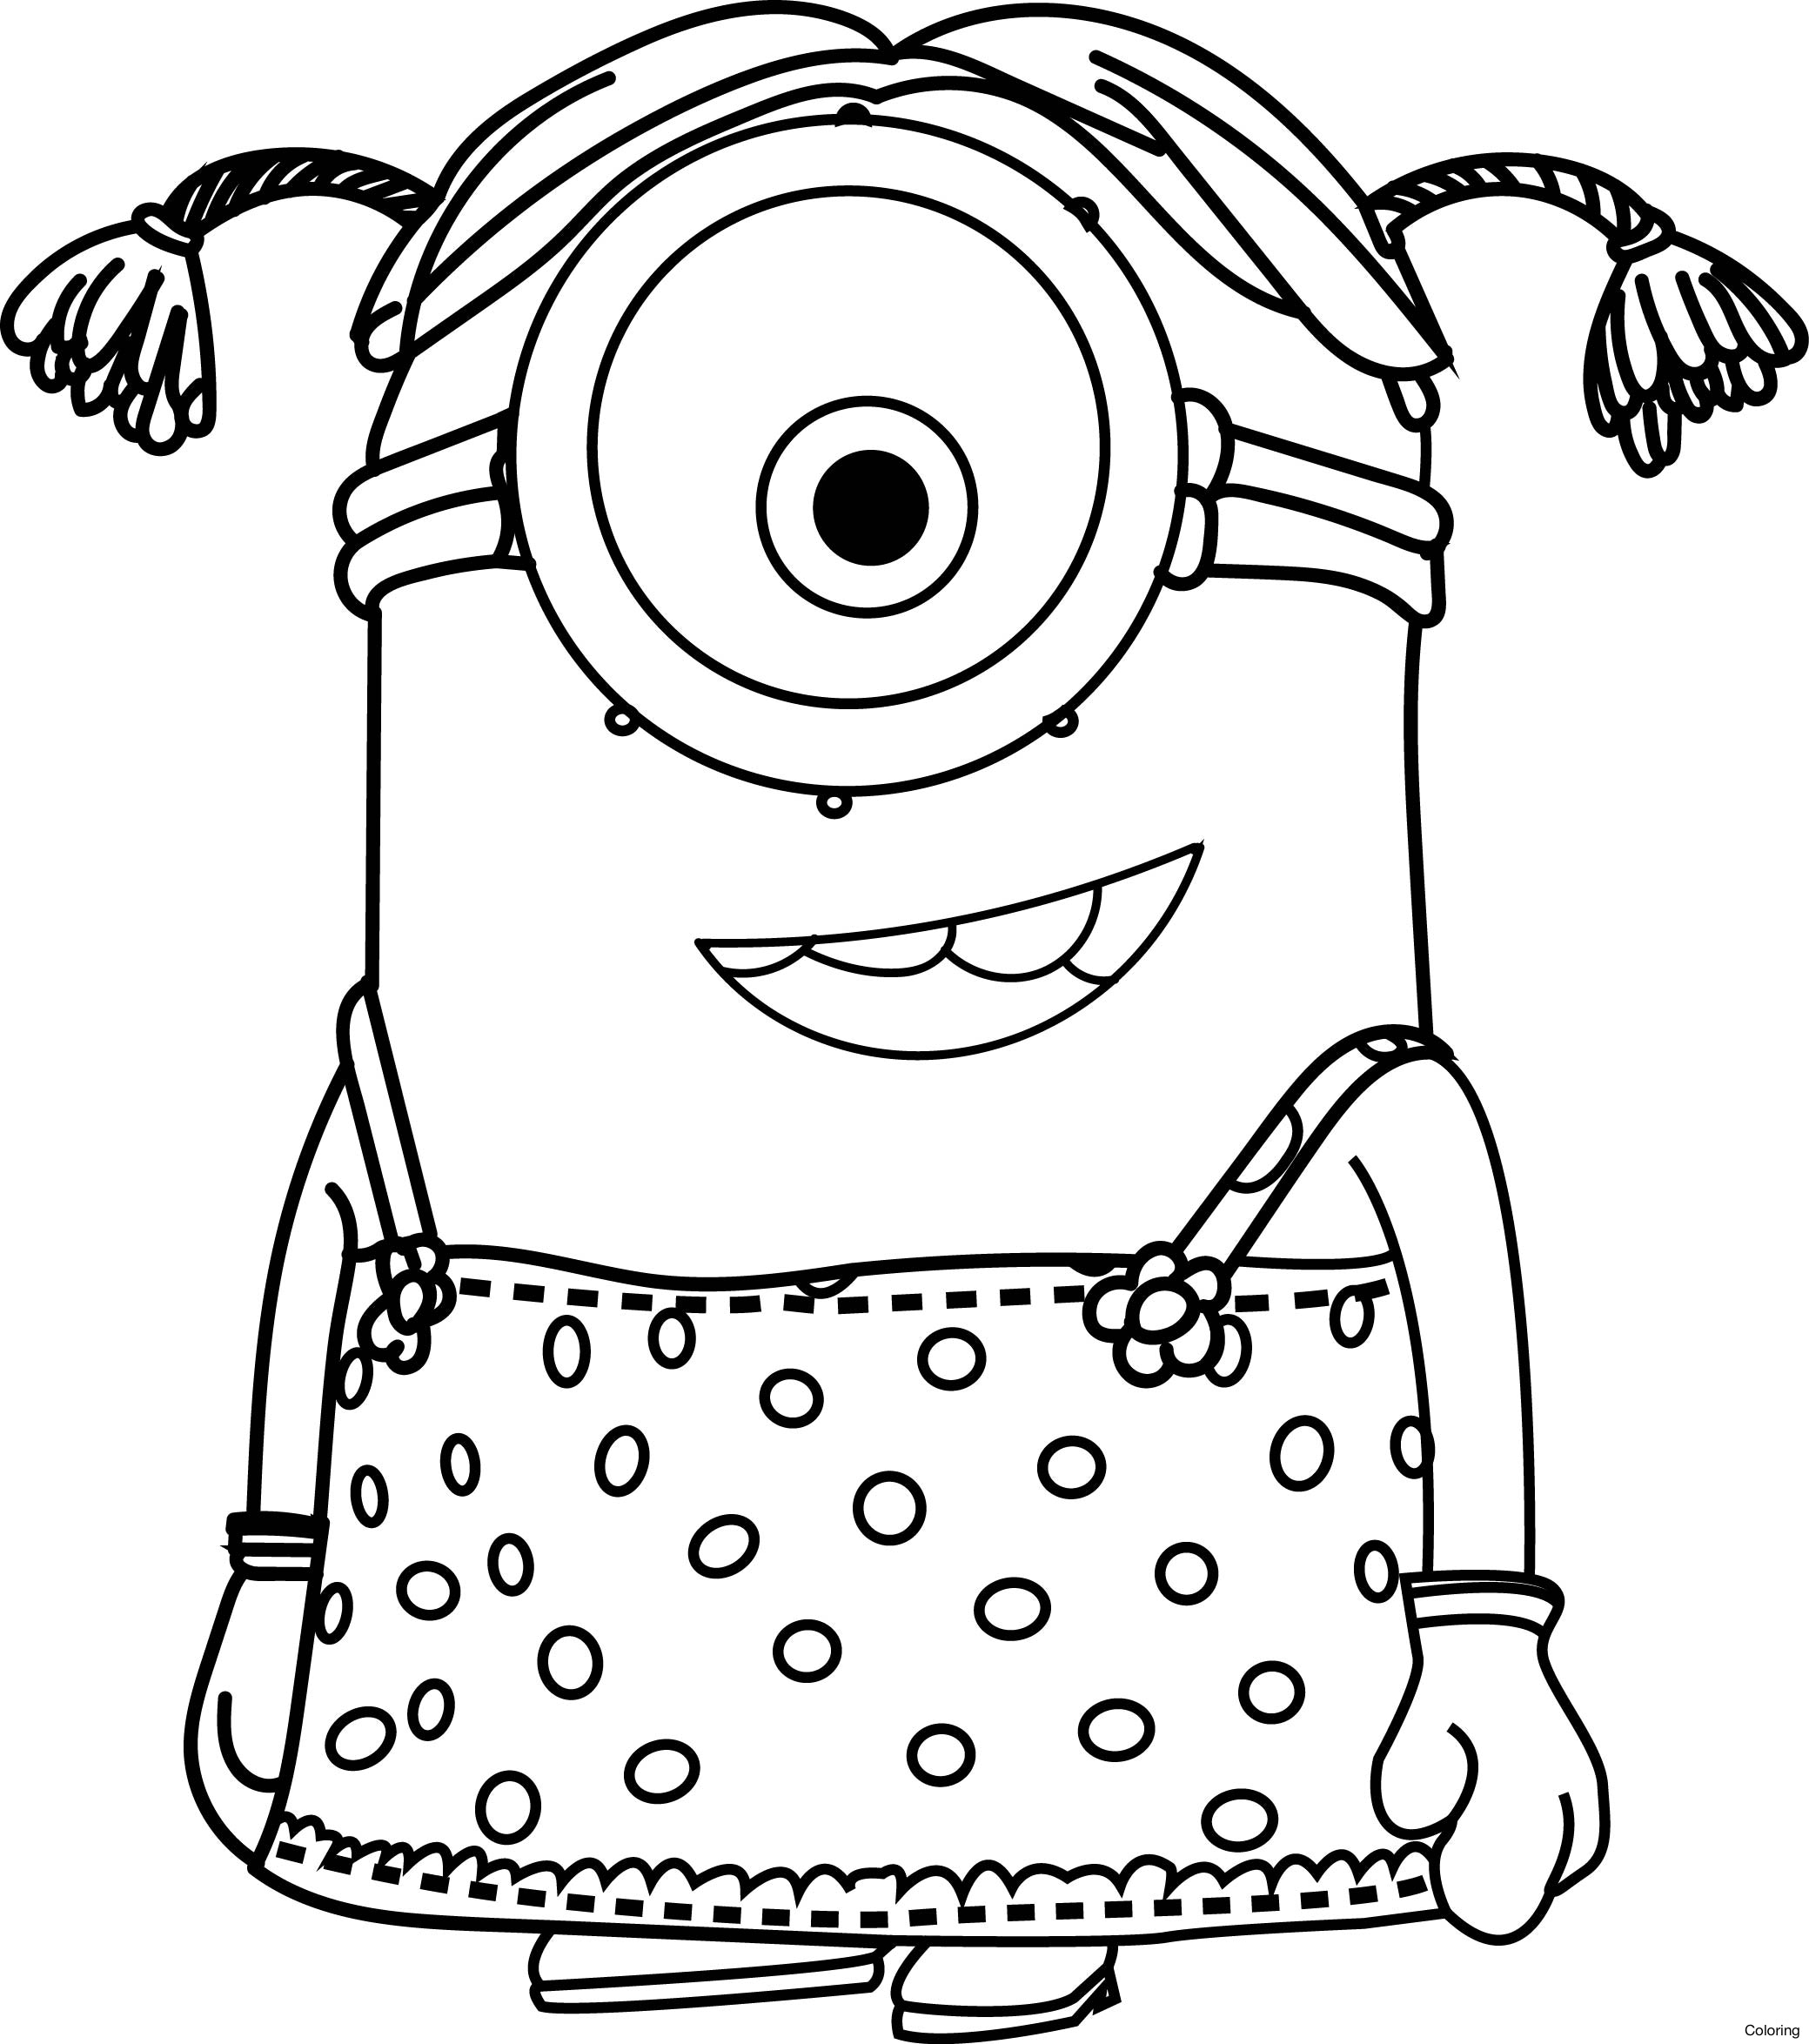 It's just a photo of Impeccable Minions Coloring Sheet